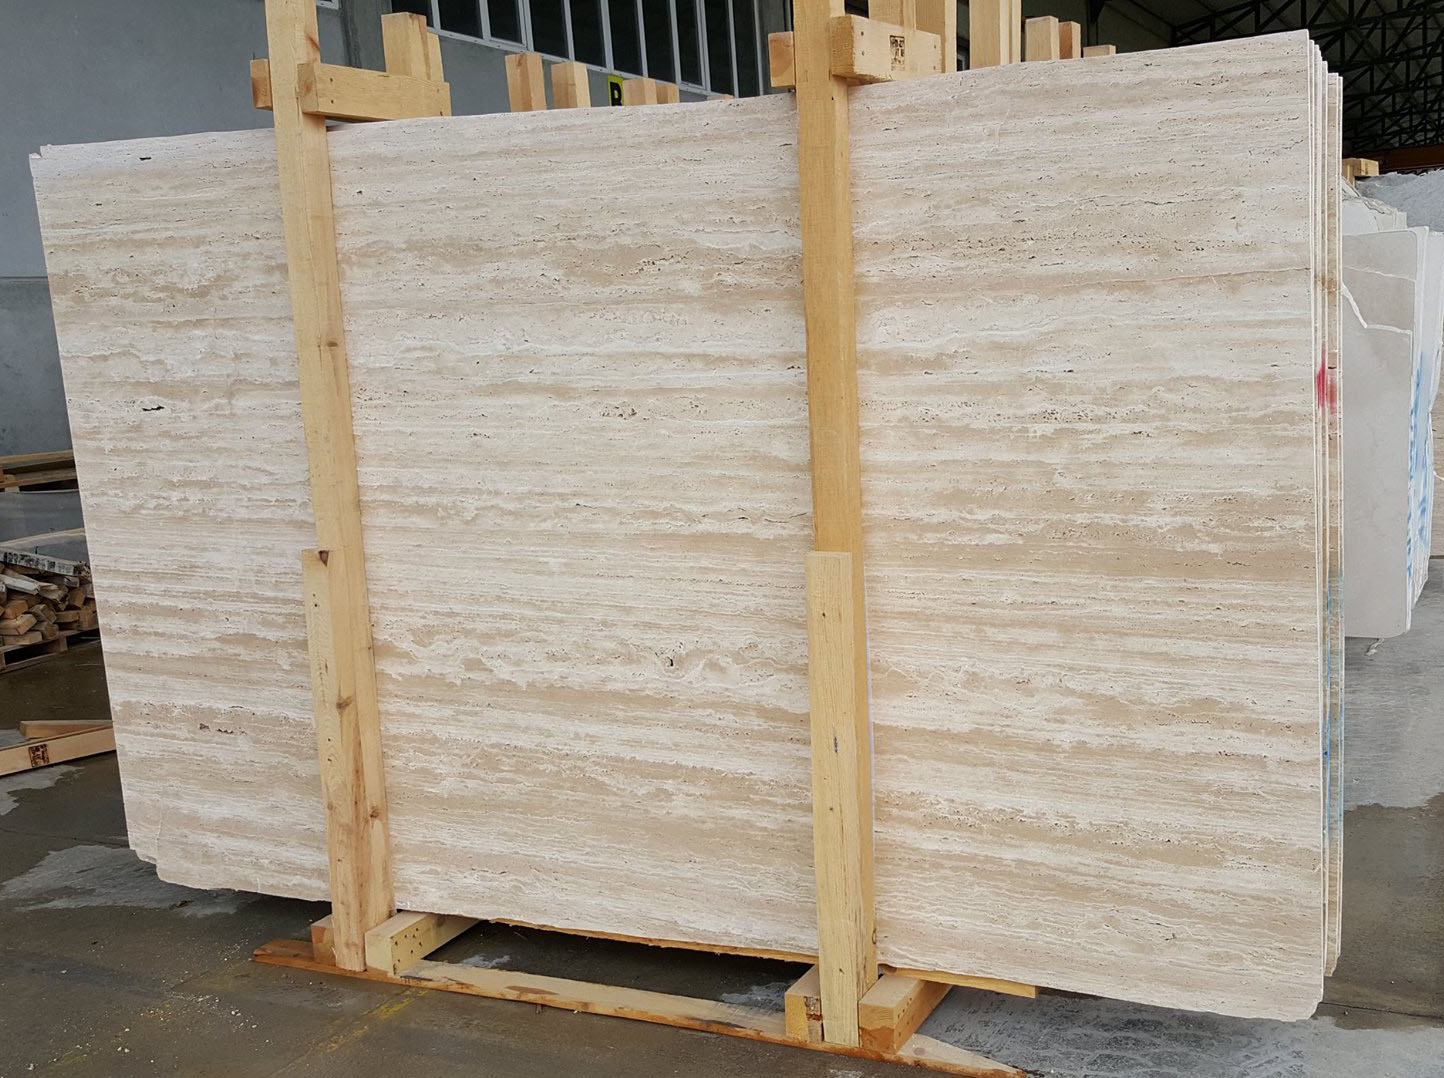 Light Vein Cut Travertine